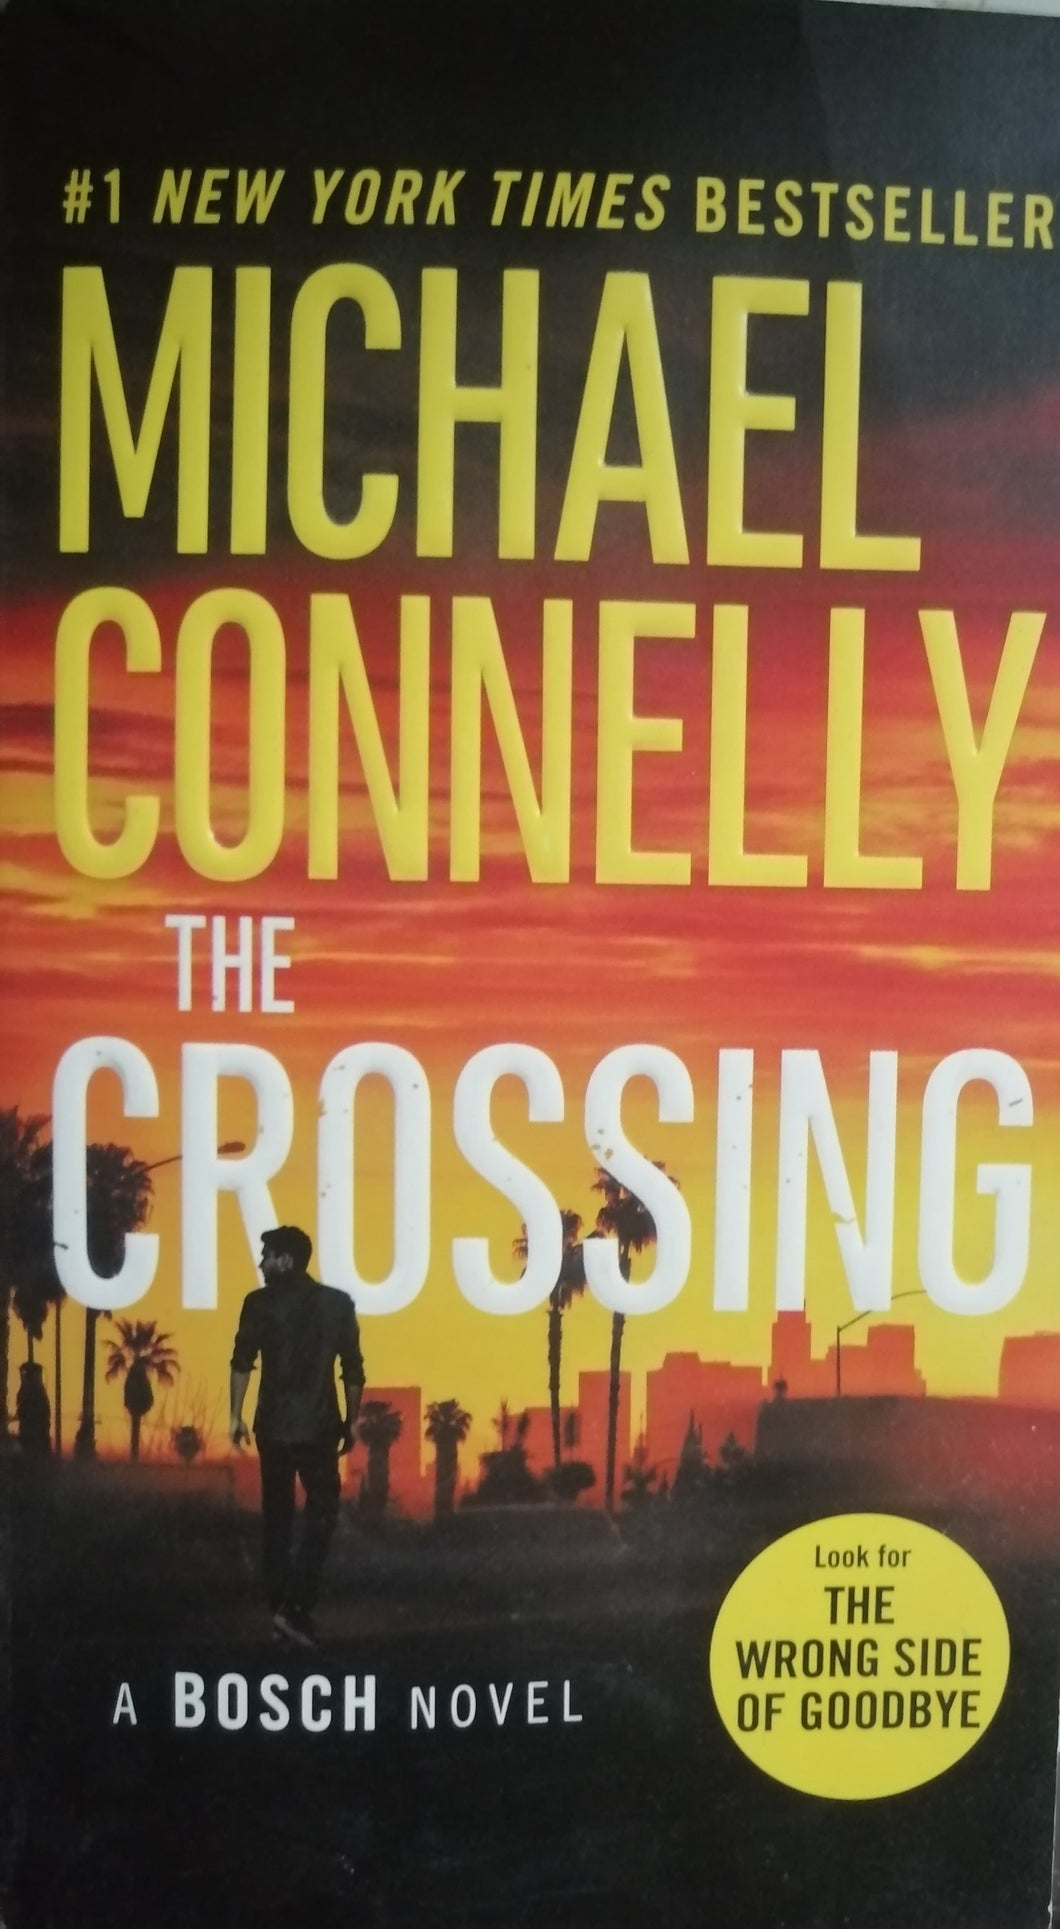 The Crossing by Michael Connely